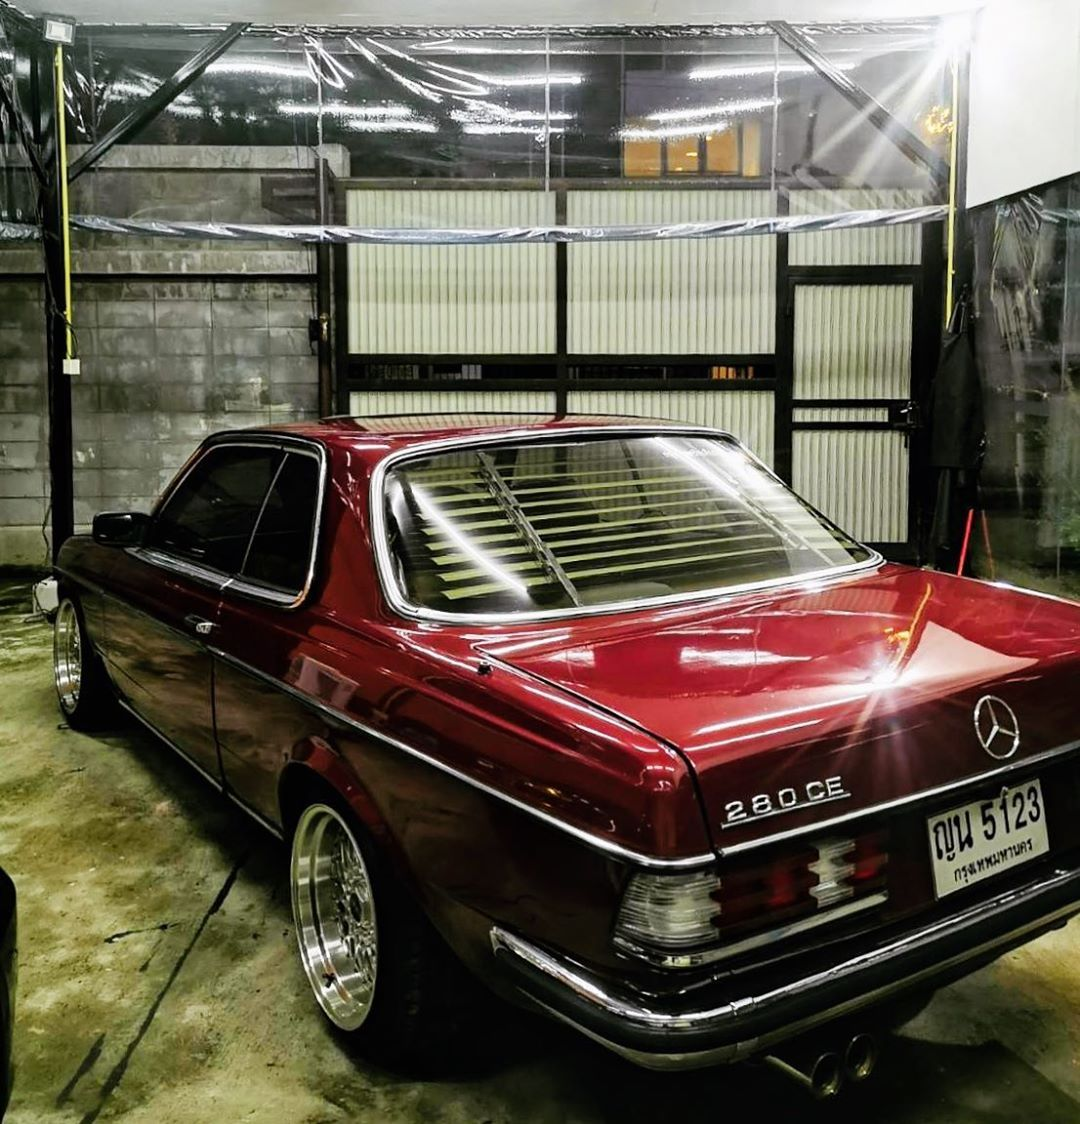 W123 280ce Mercedes Benz Coupe Mercedes Coupe Mercedes Benz Cars